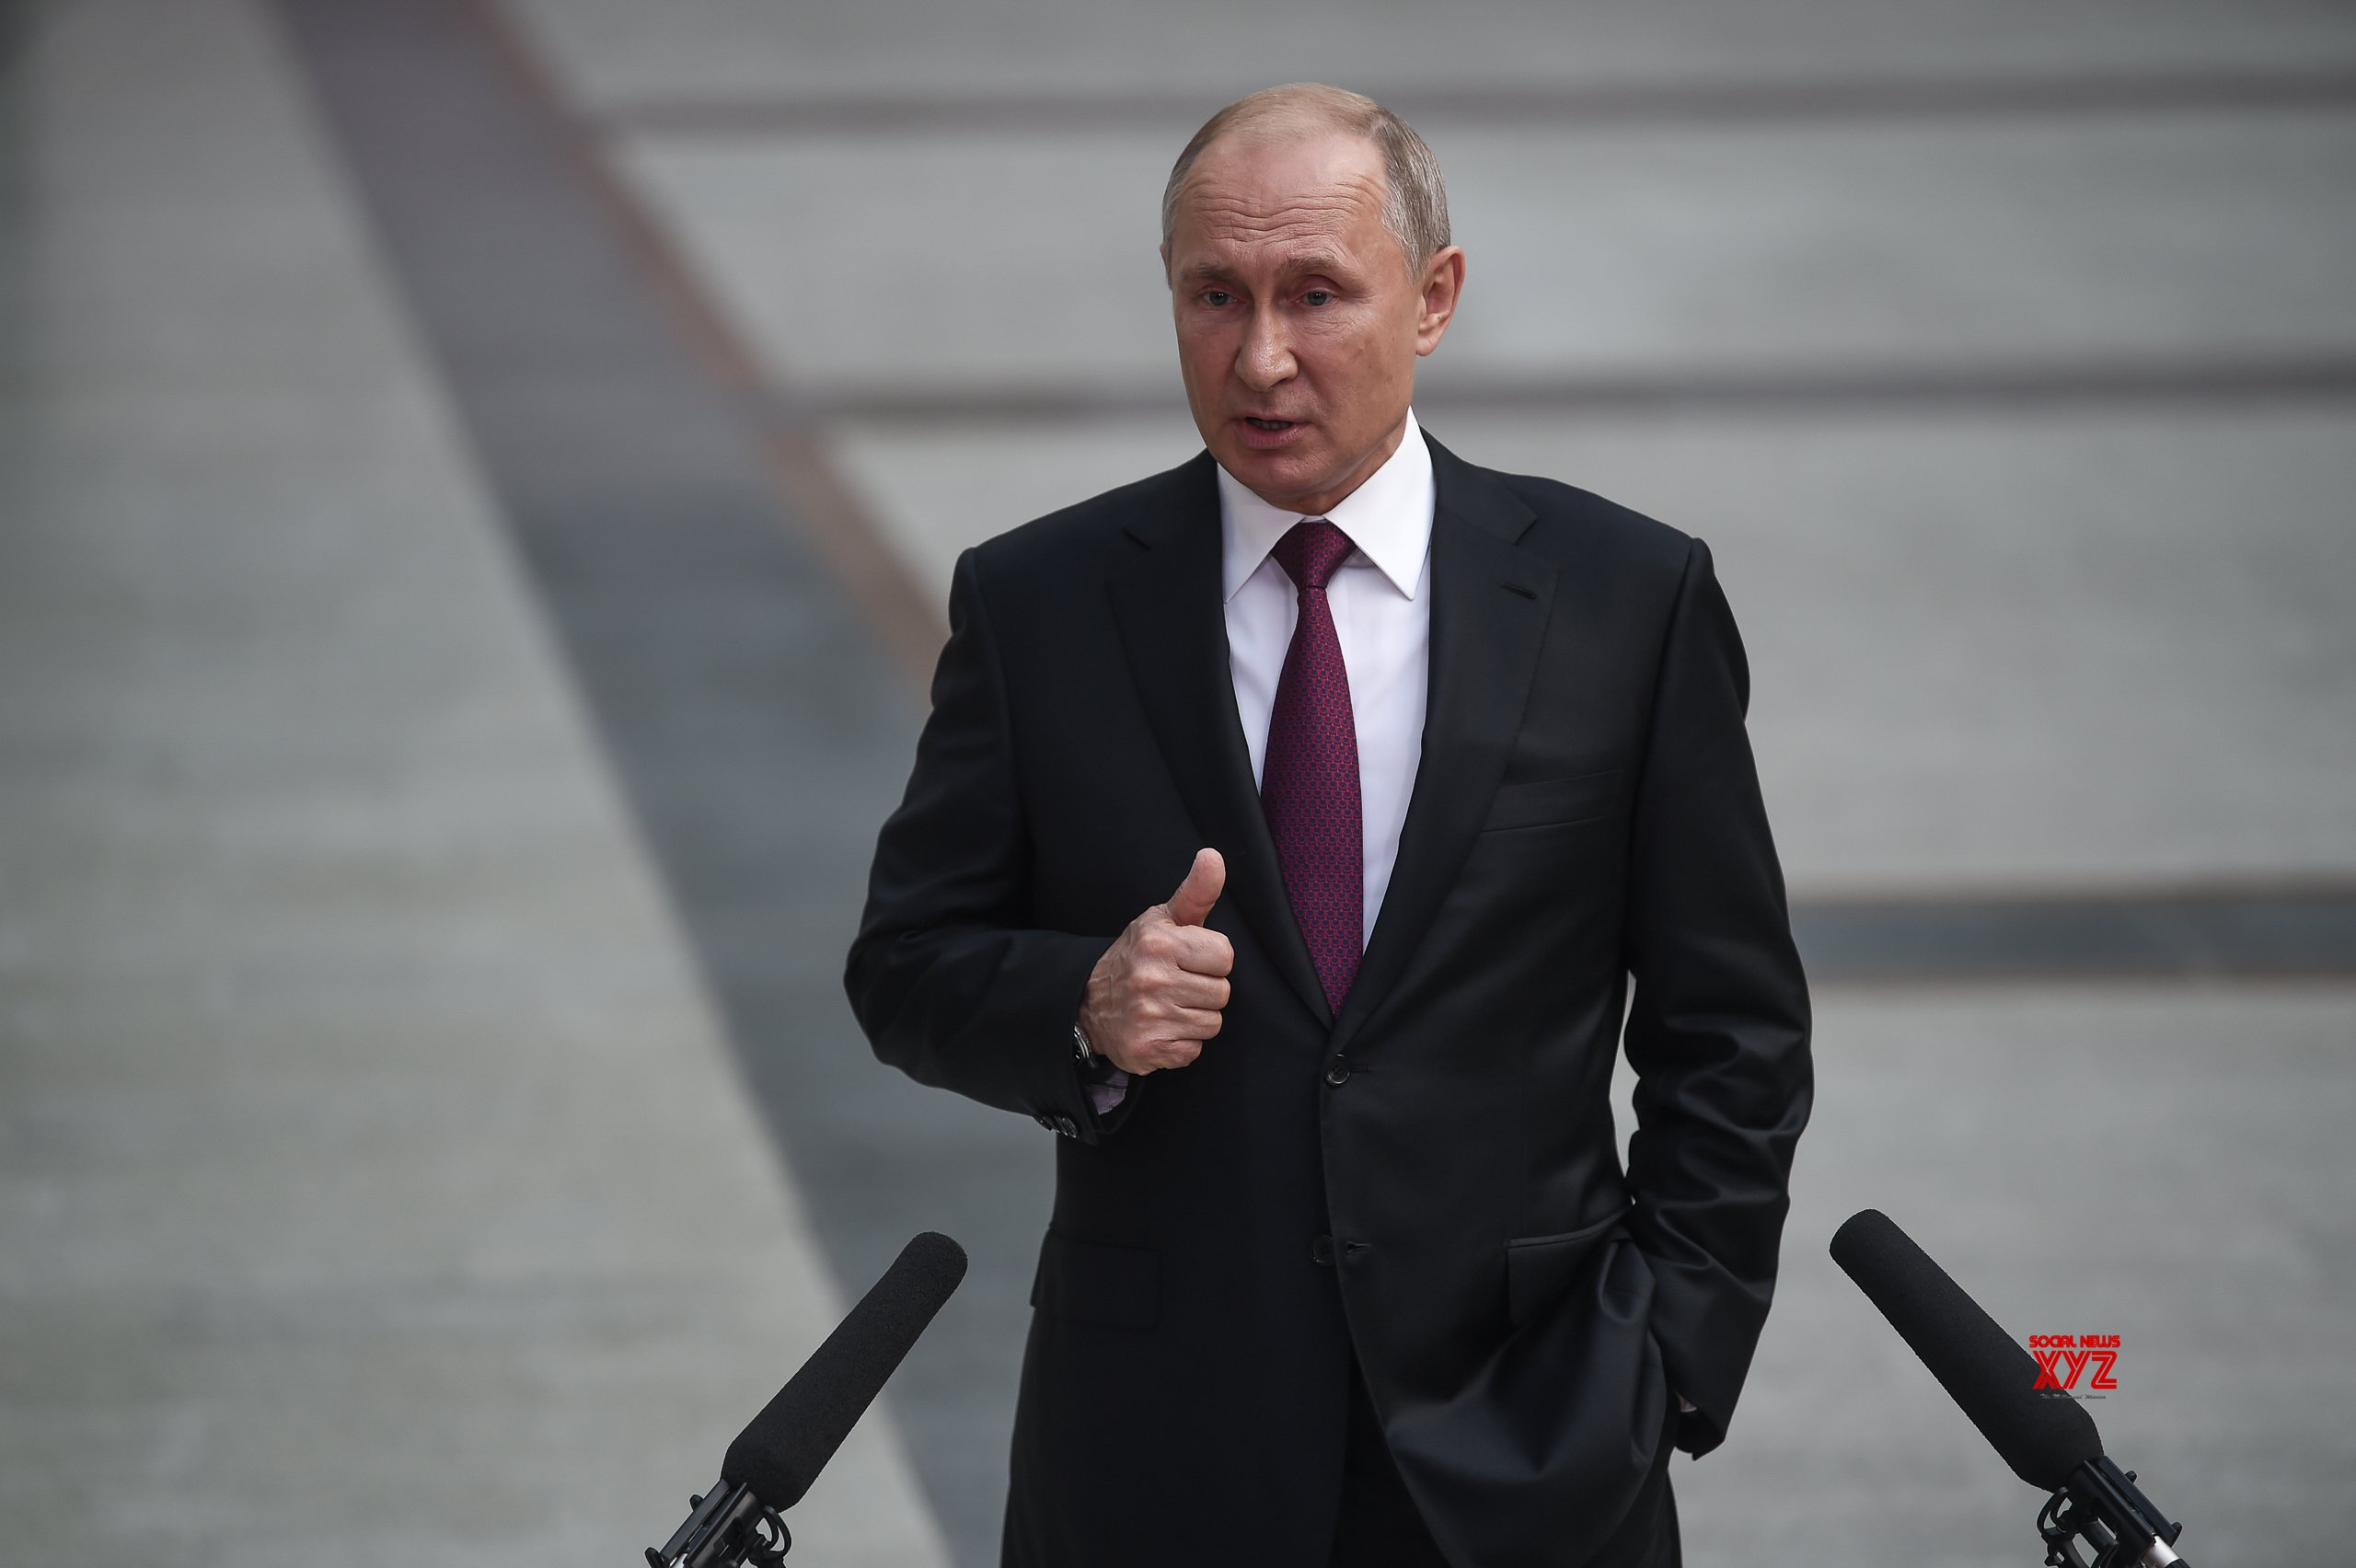 Putin pitches major constitutional changes, names new PM